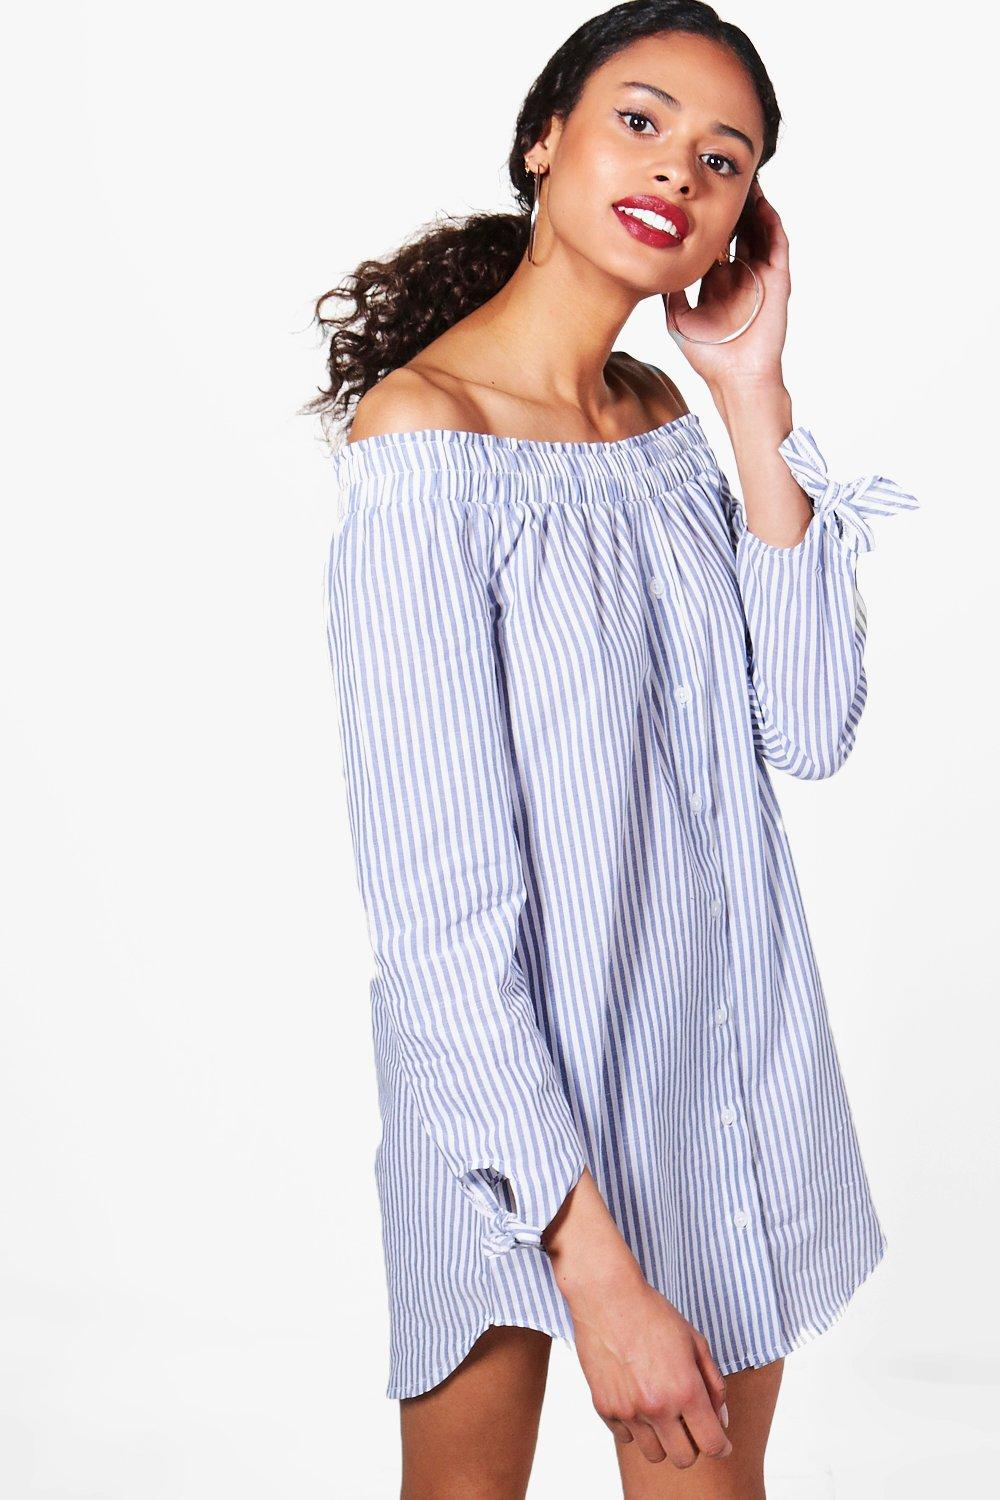 ea3c05f21f45 Savanna Stripe Bardot Shirt Dress. Hover to zoom